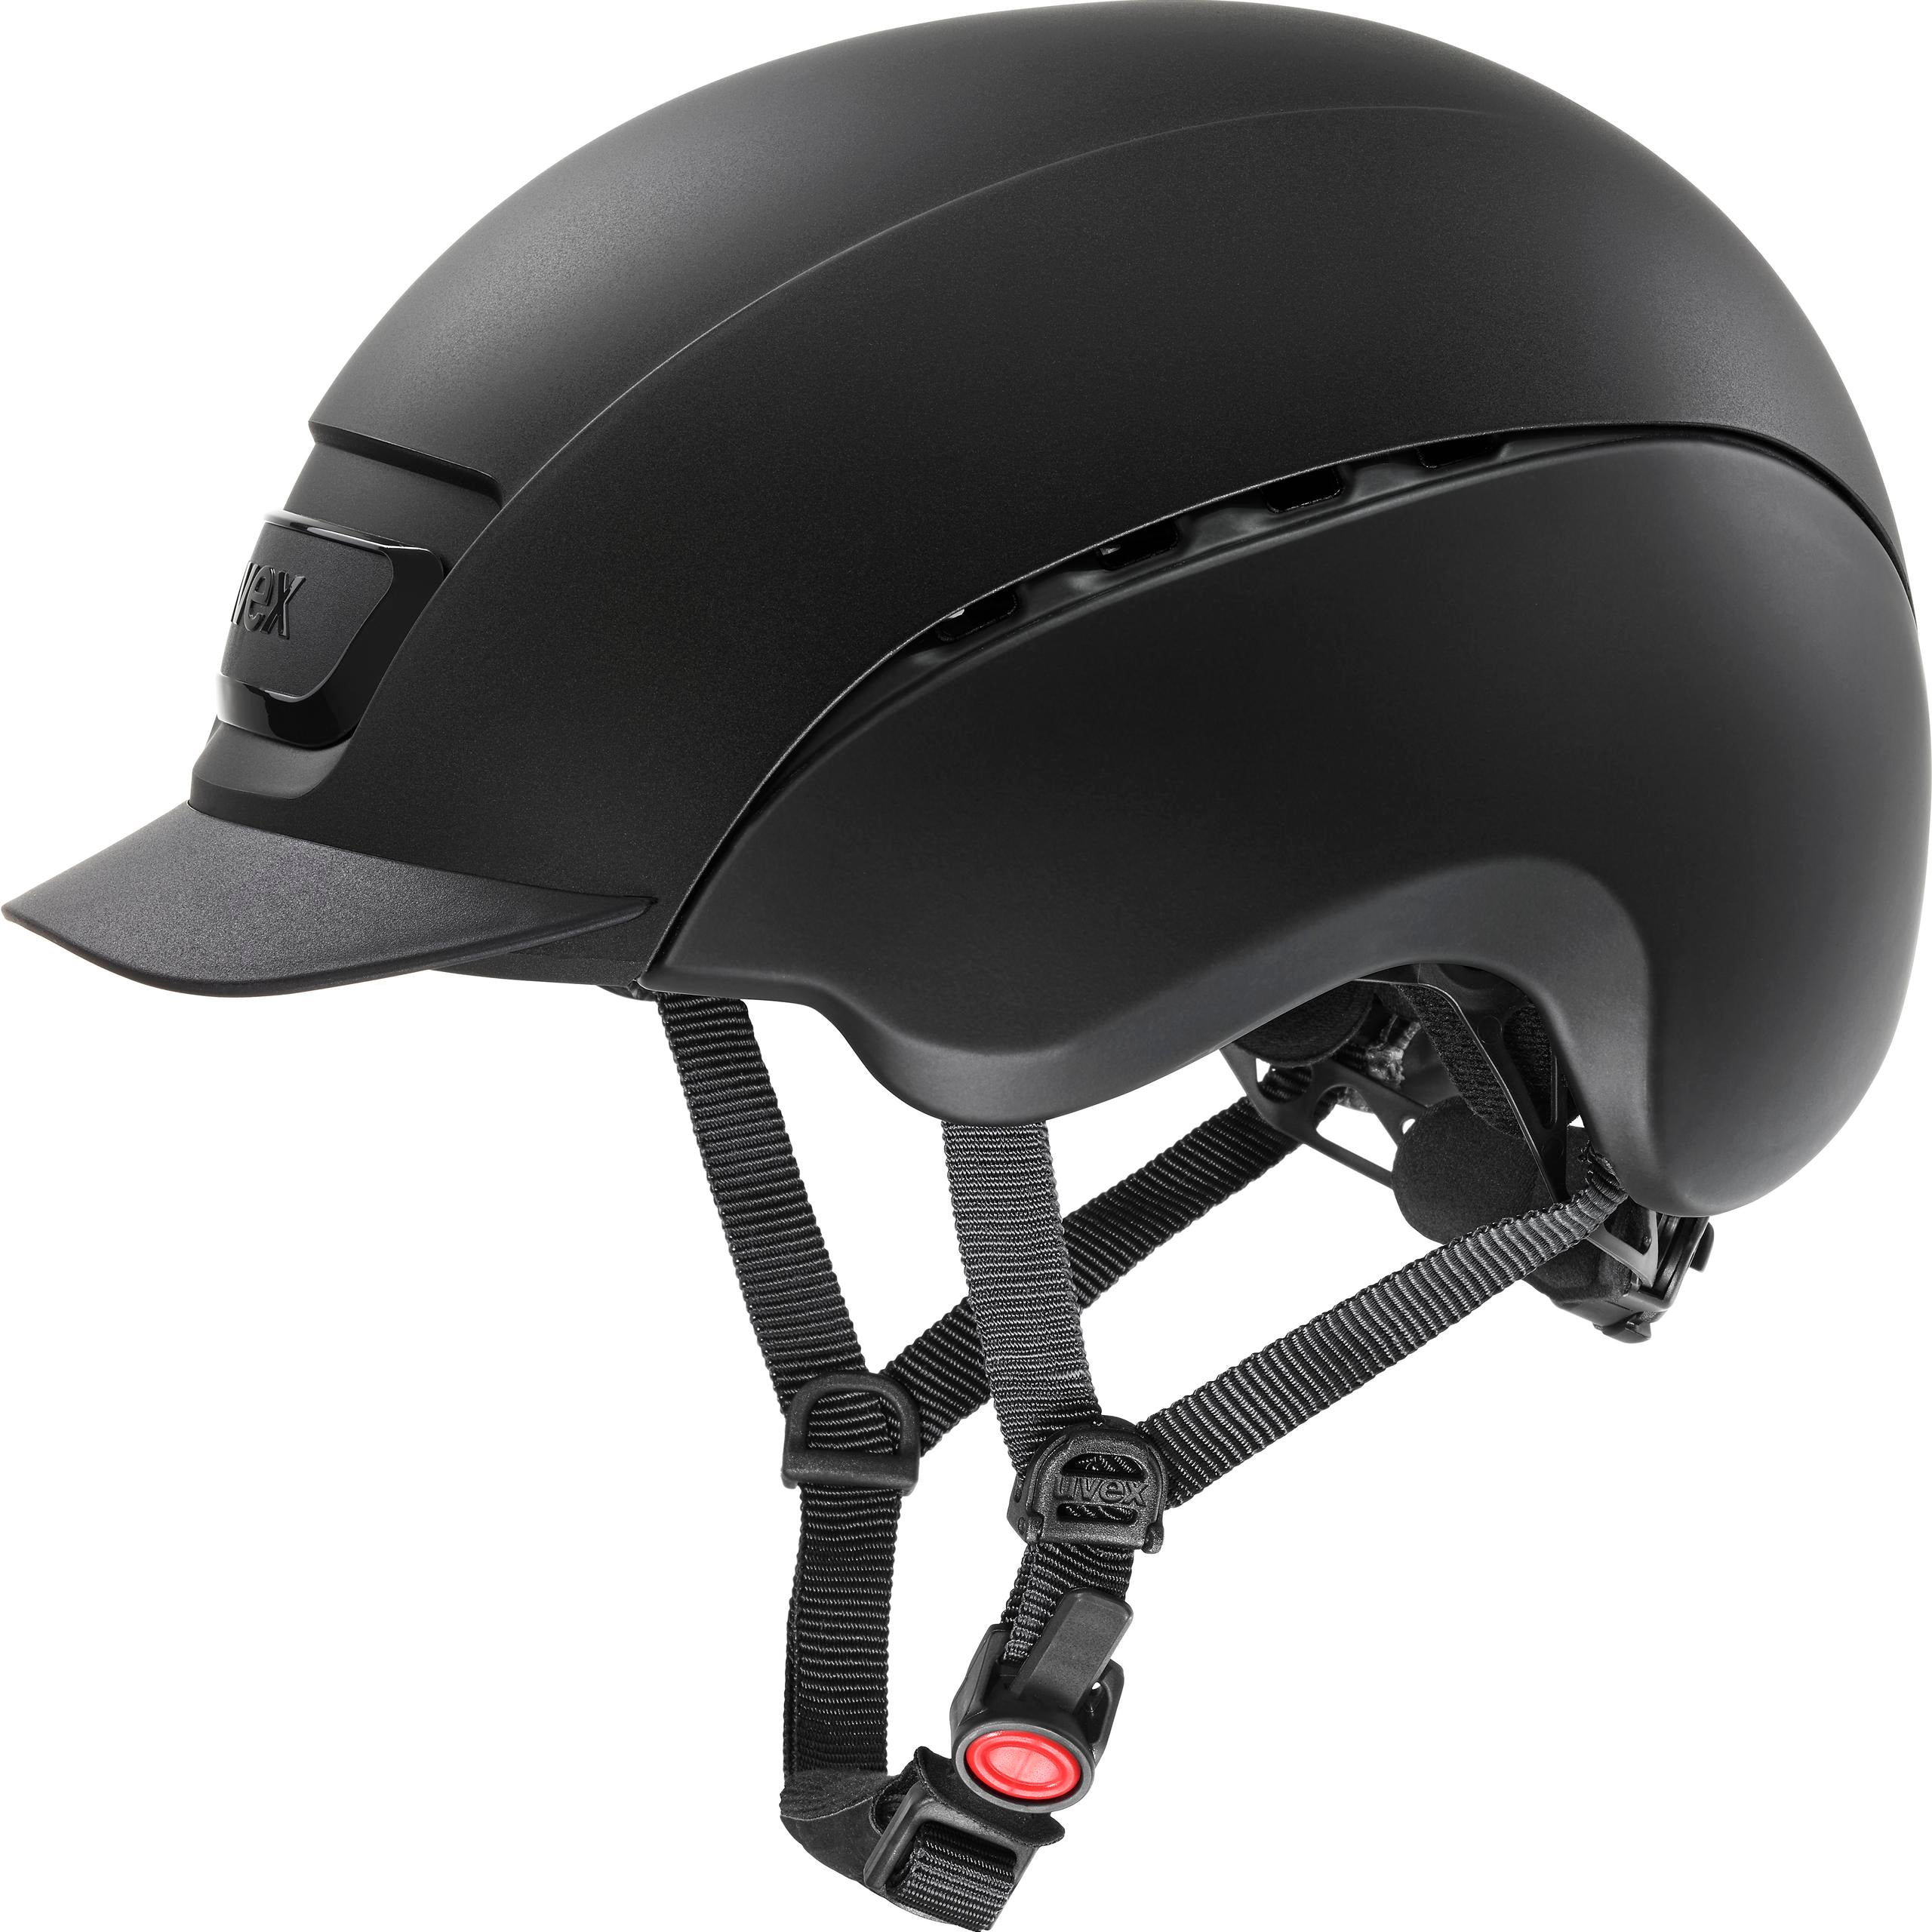 Black Matt Uvex Elexxion Plus Riding Helmet